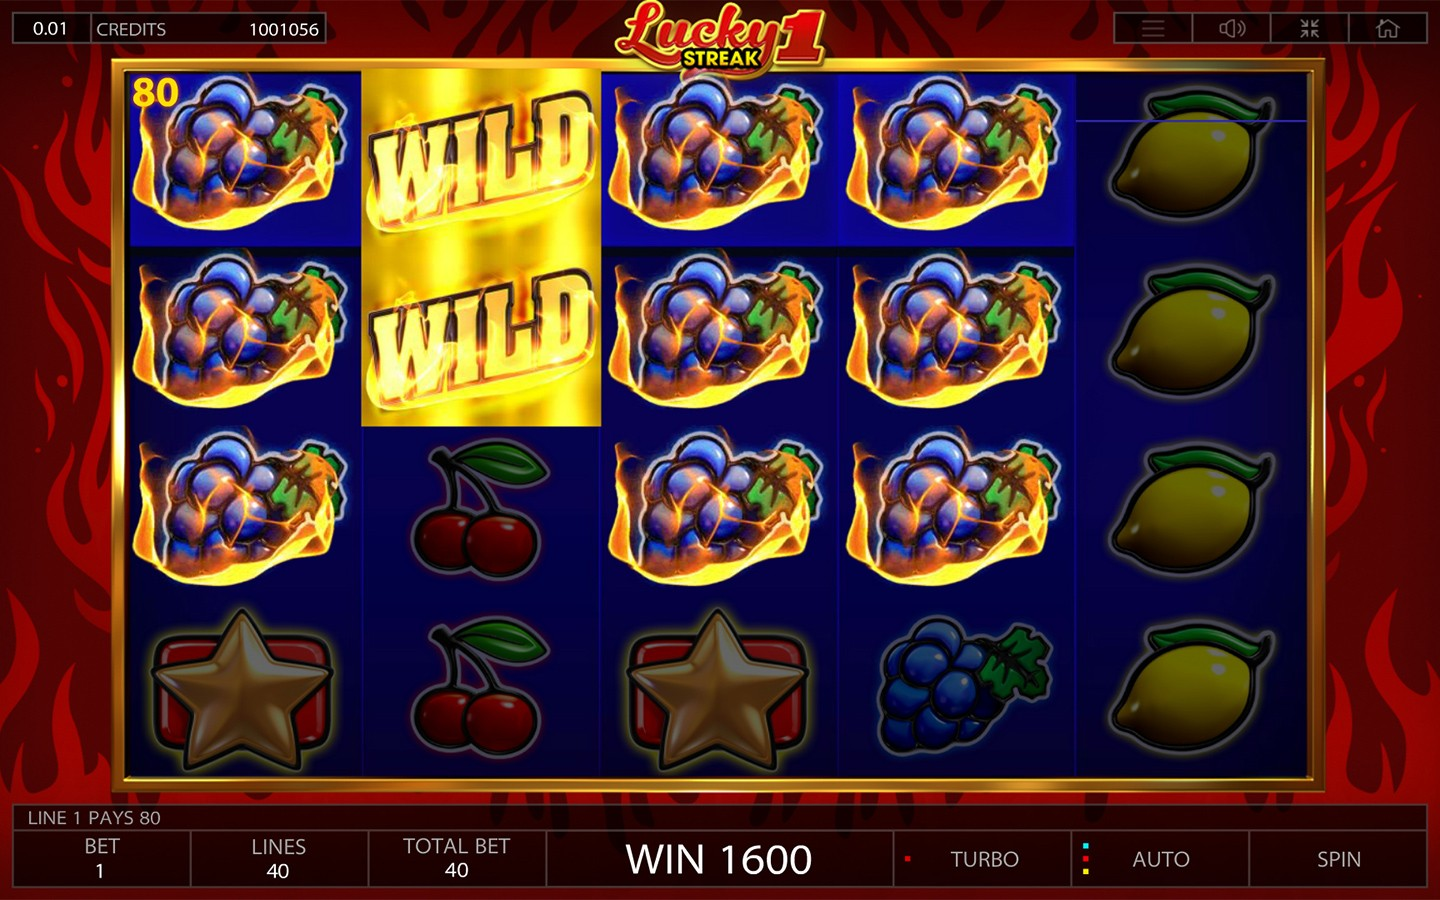 Lucky Streak 1 | Online Casino Slot Game by Endorphina | Try it now!